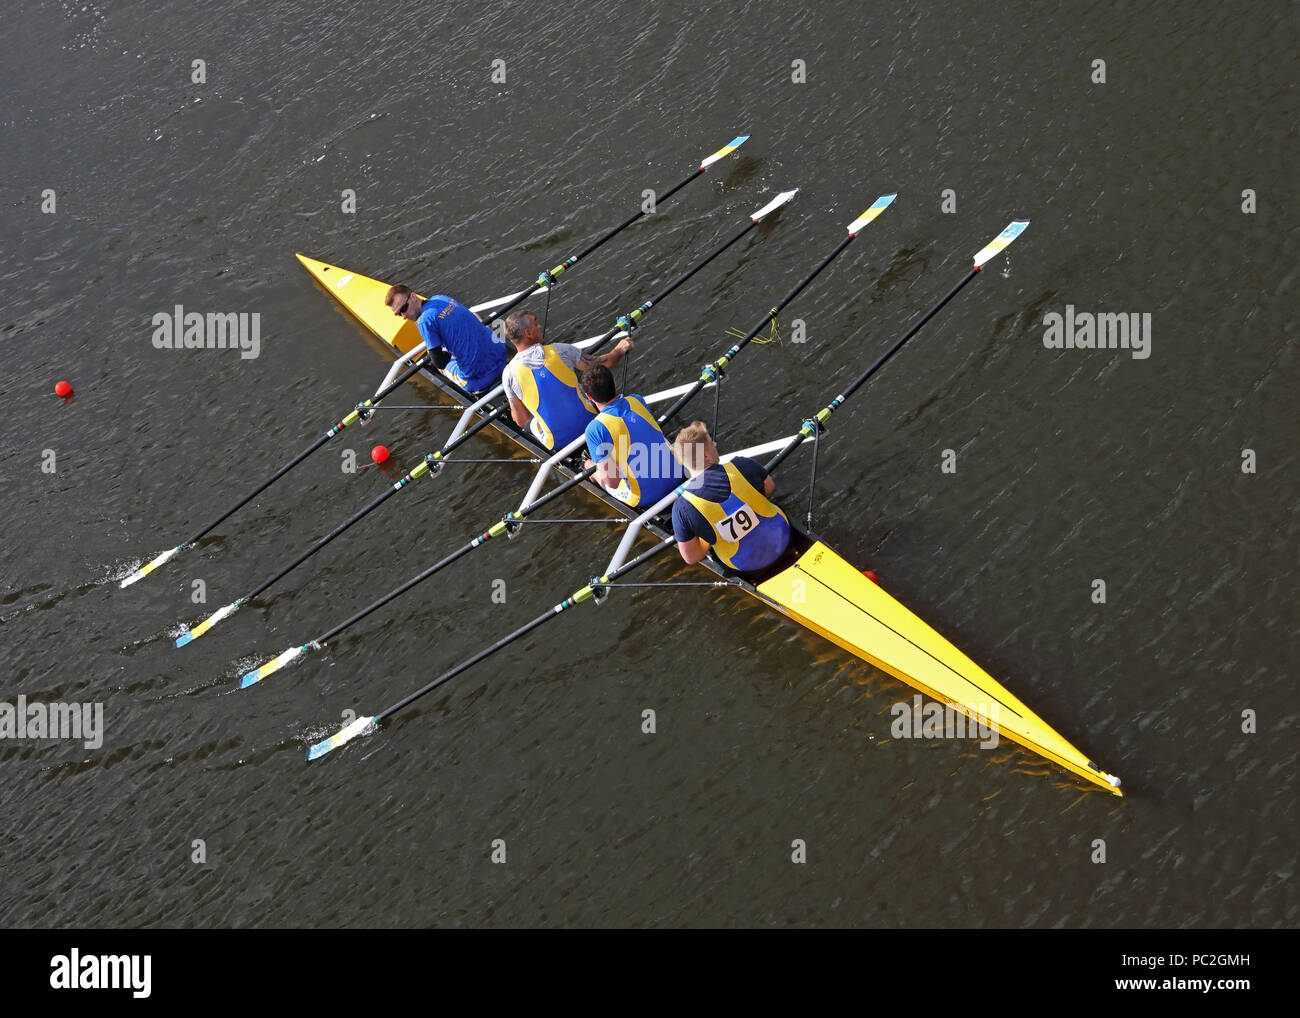 Mens quad team at Warrington Rowing Club 2018 Summer regatta, Howley lane, Mersey River, Cheshire, North West England, UK - Stock Image